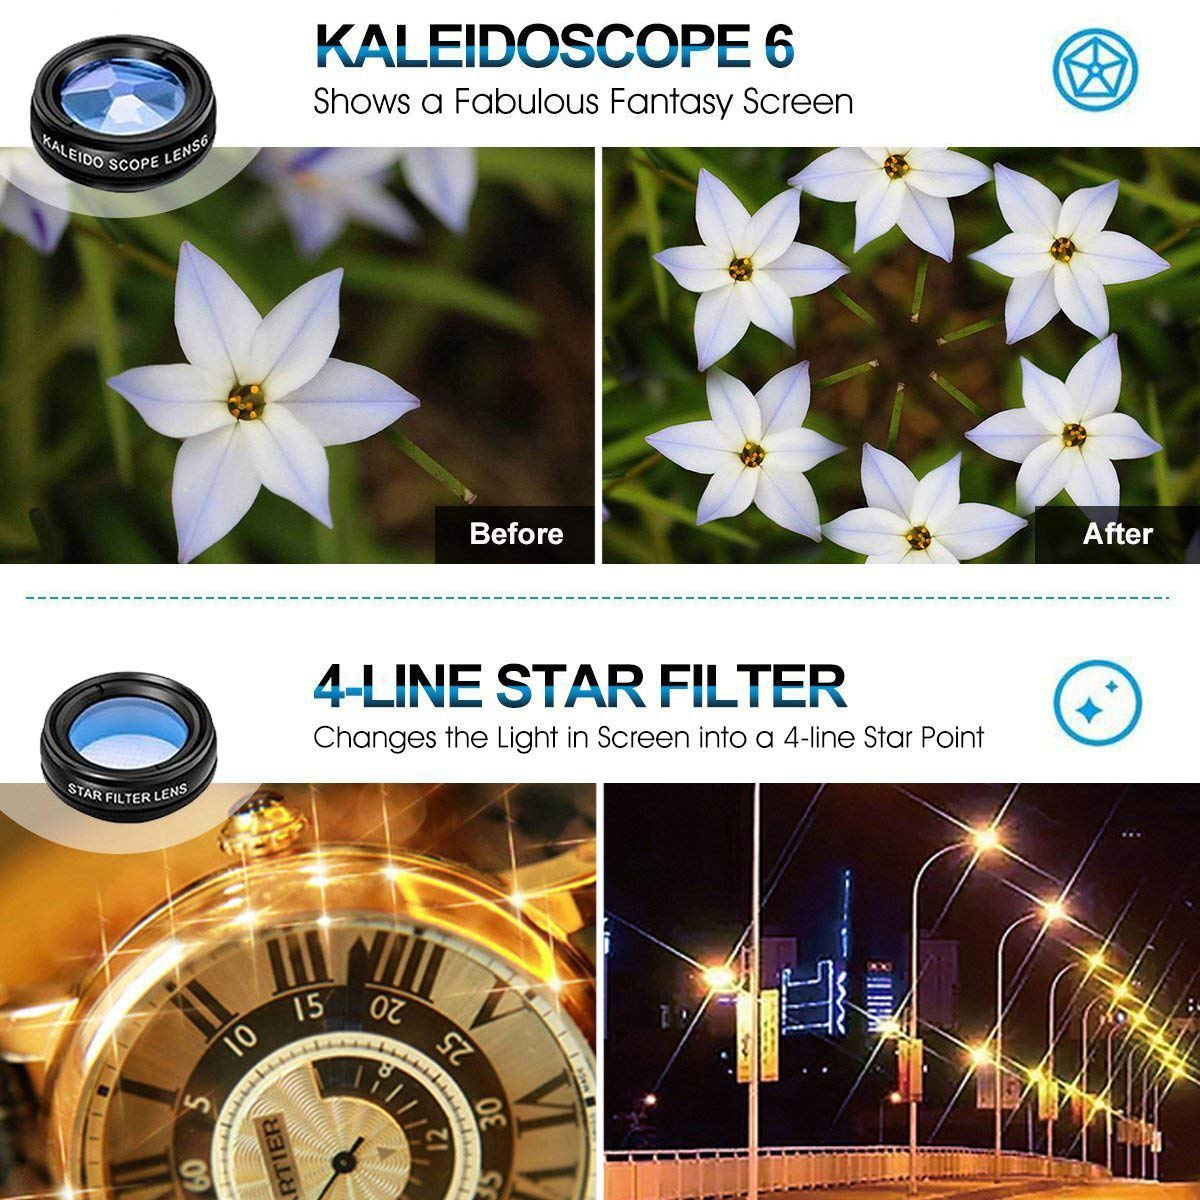 Macro lens 10 in 1 Universal Phone Camera lens kit Clip-on Phone Wide Angle lens CPL//Flow//Star//Radial Filter for iPhone Samsung Most of Smartphone Kaleidoscope lens Telephoto lens Fisheye lens